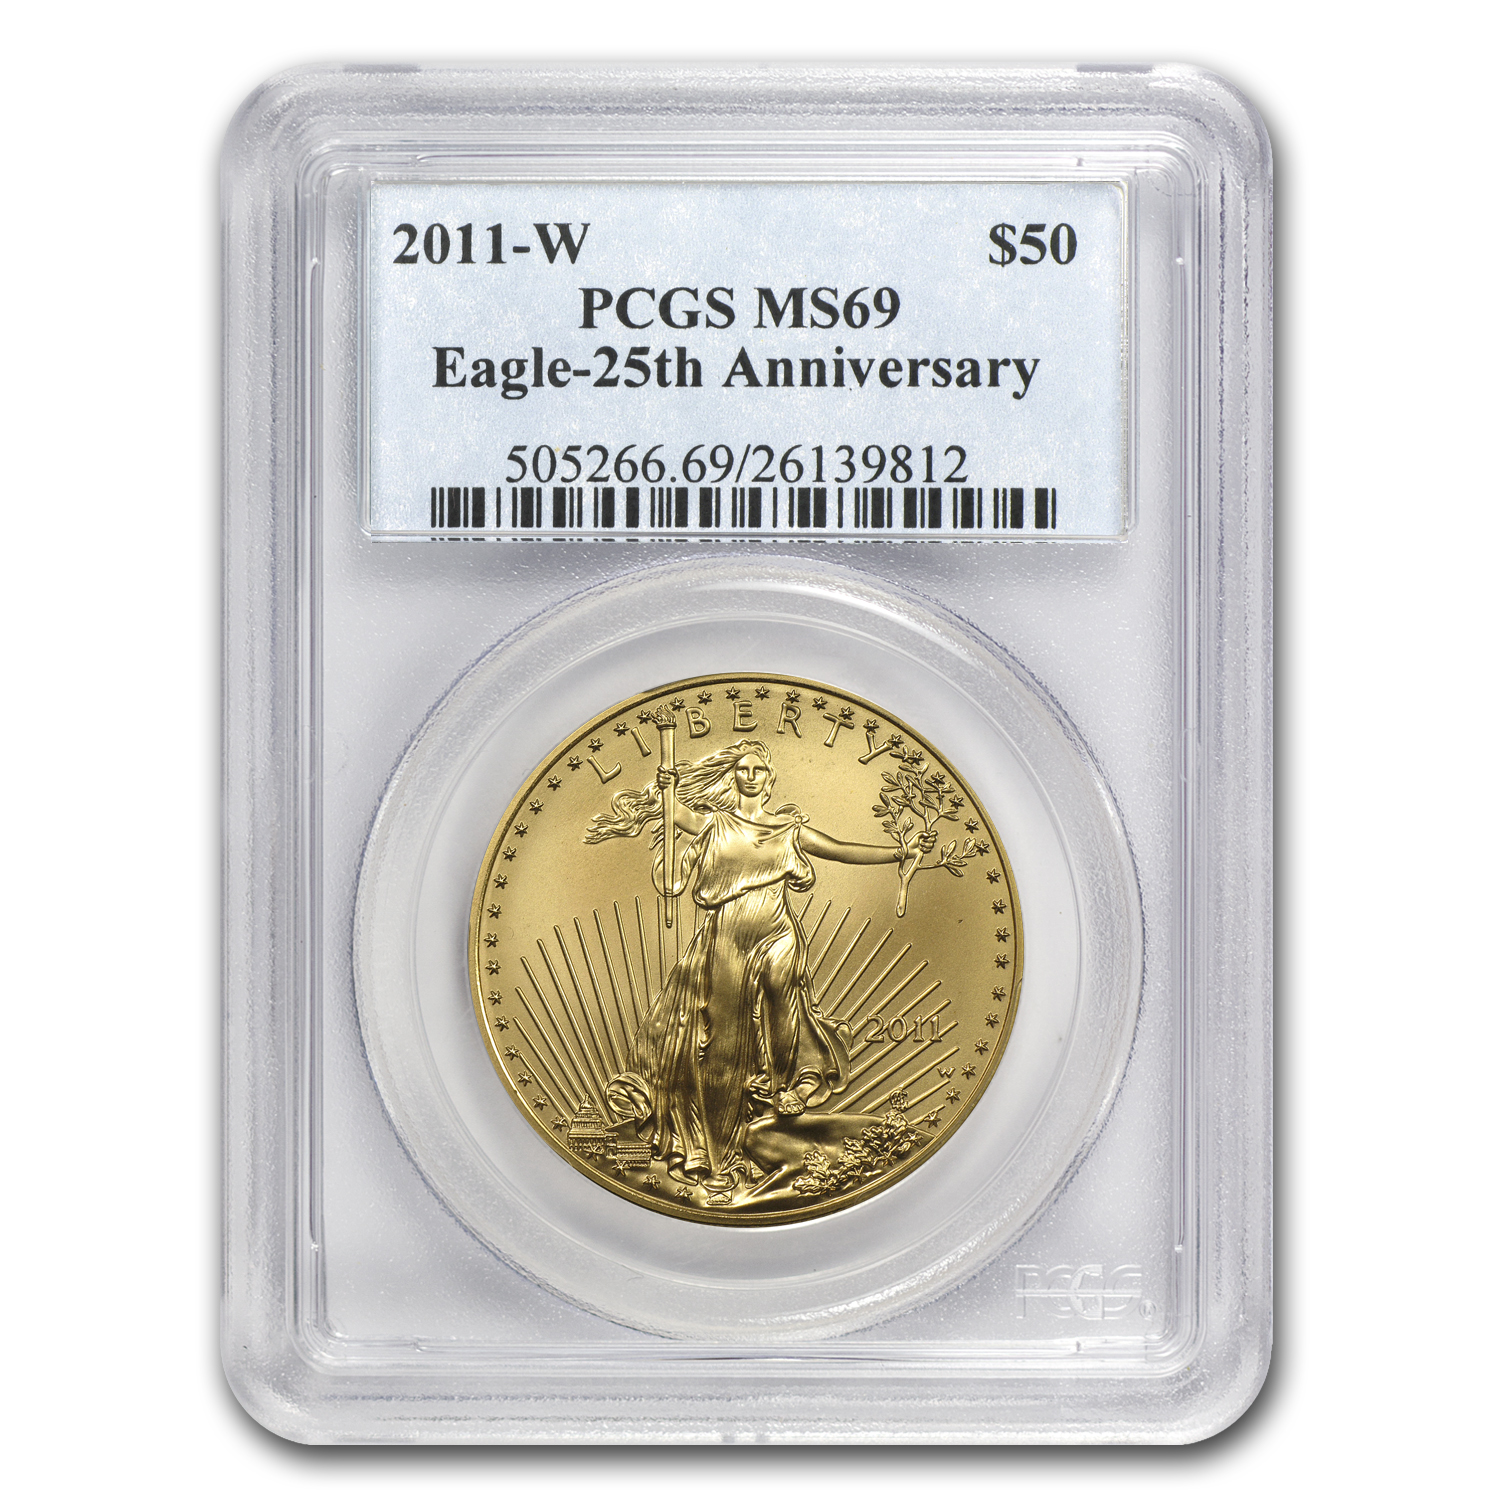 2011-W 1 oz Burnished Gold Eagle MS-69 PCGS